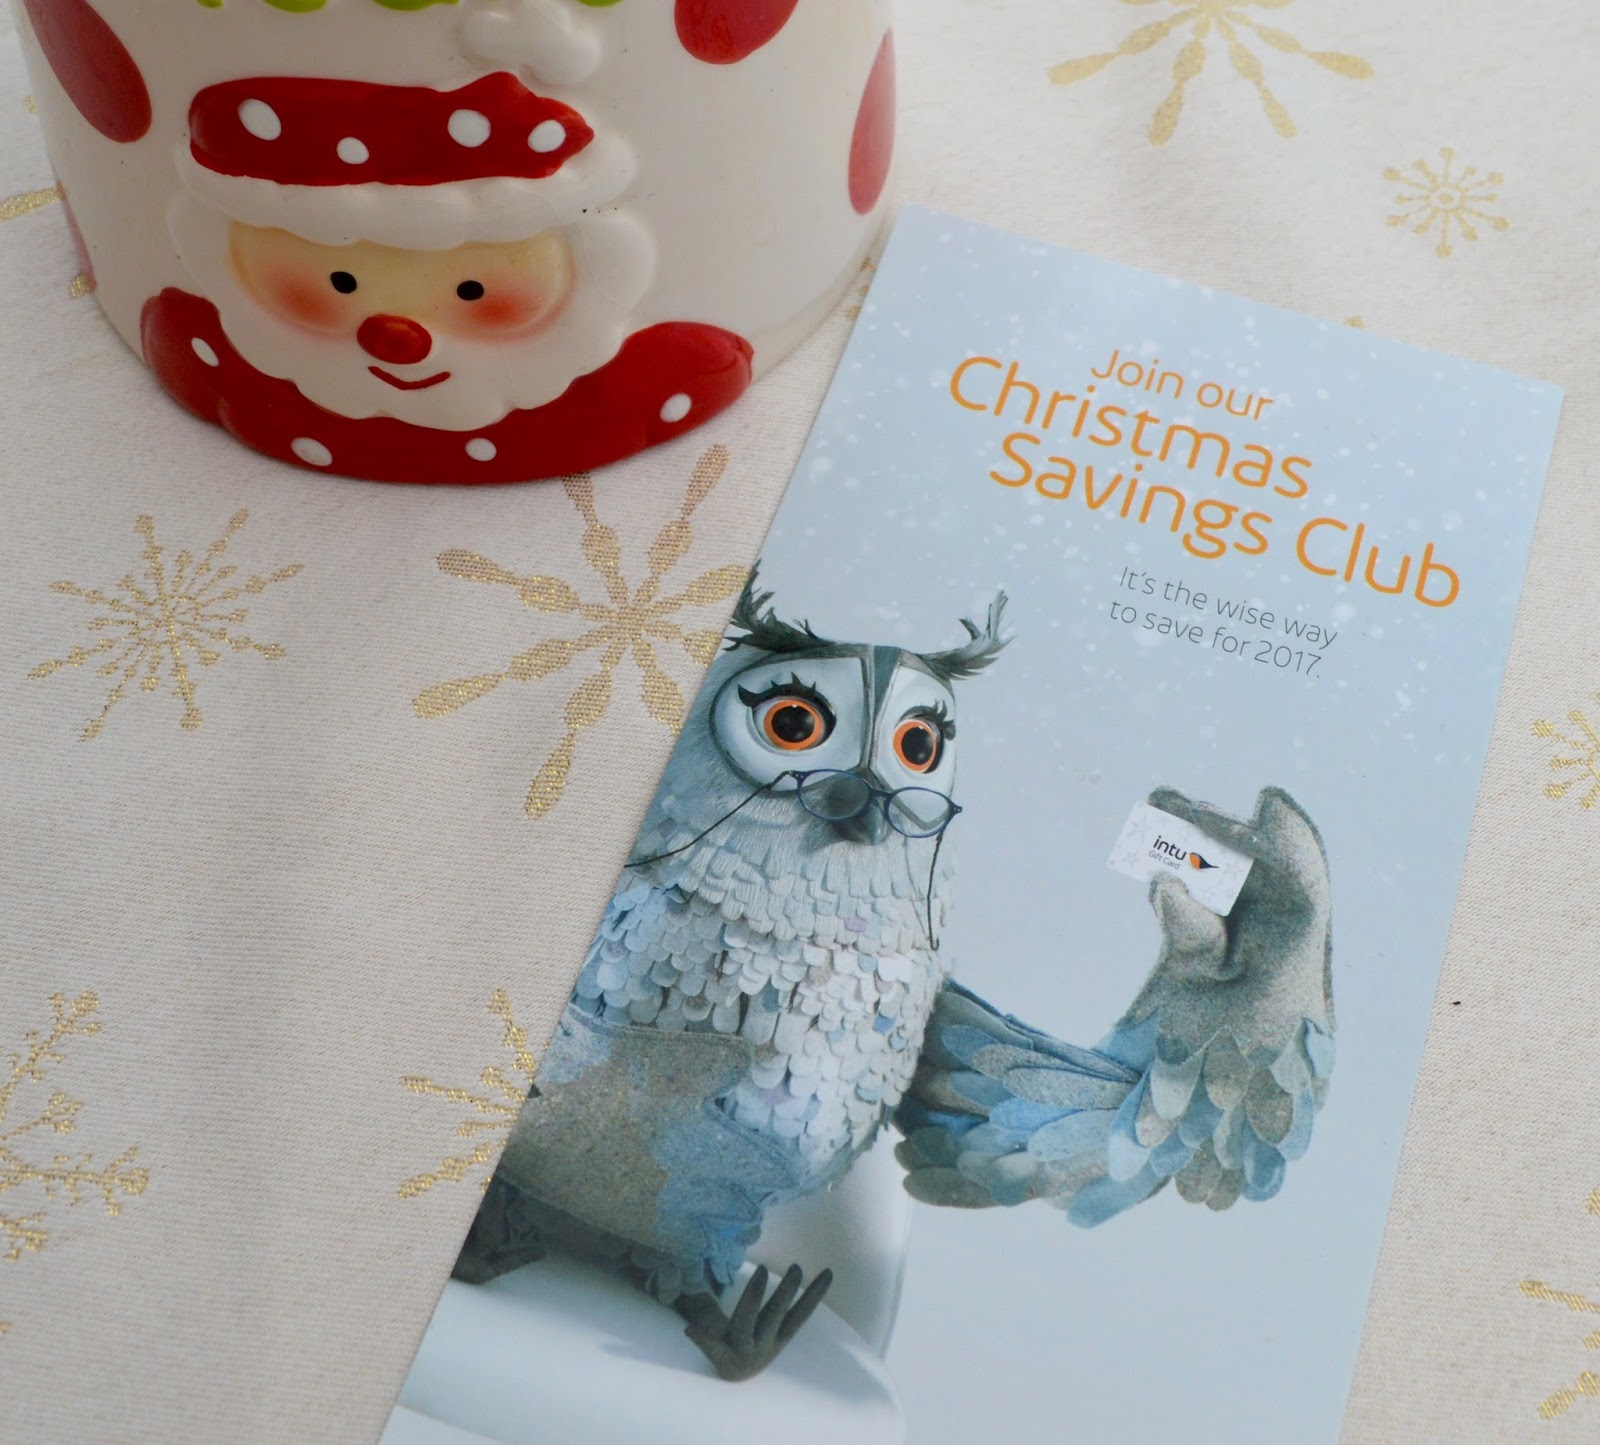 Frugal 2017 | Saving for Christmas 2017 with intu Metrocentre Savings Club